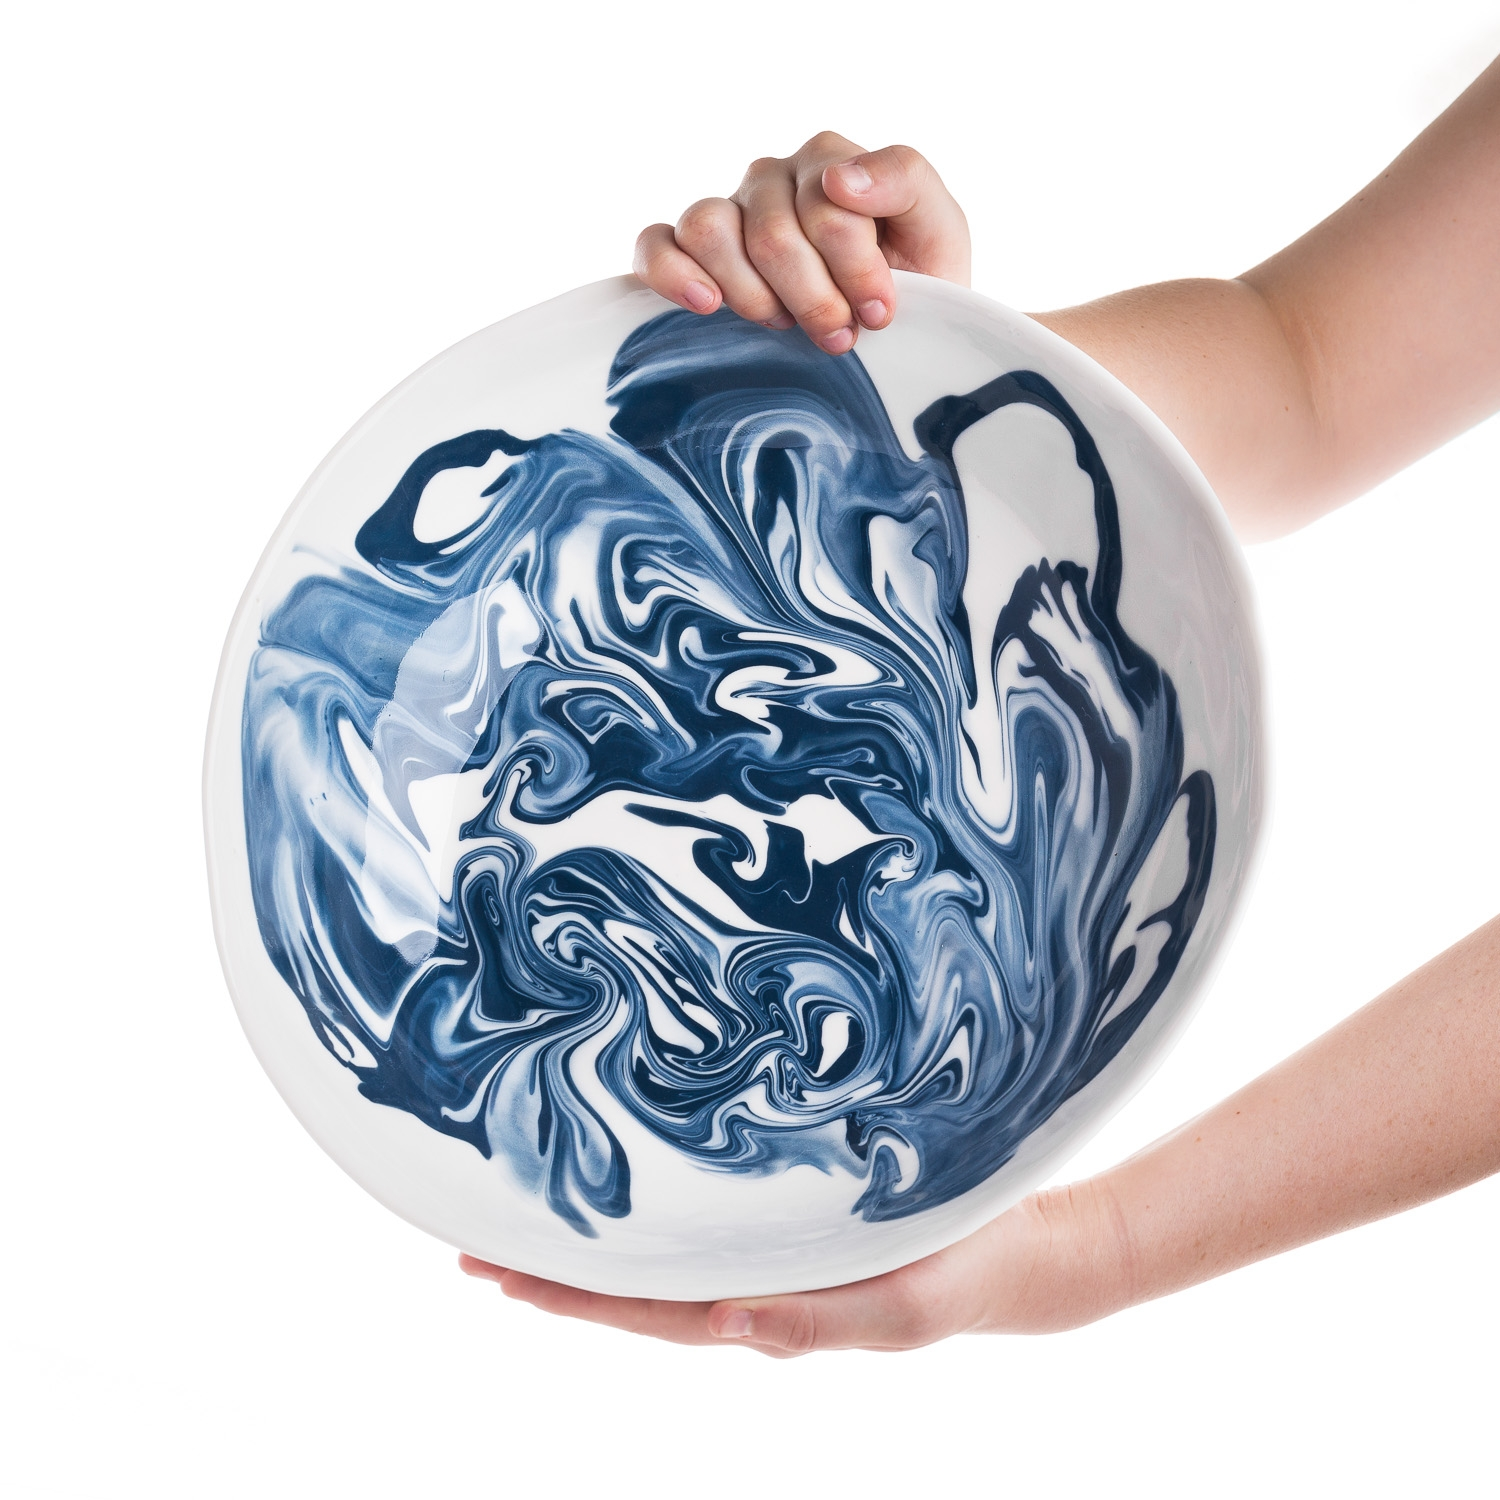 Hands holding large decorated plate with blue design on white background.